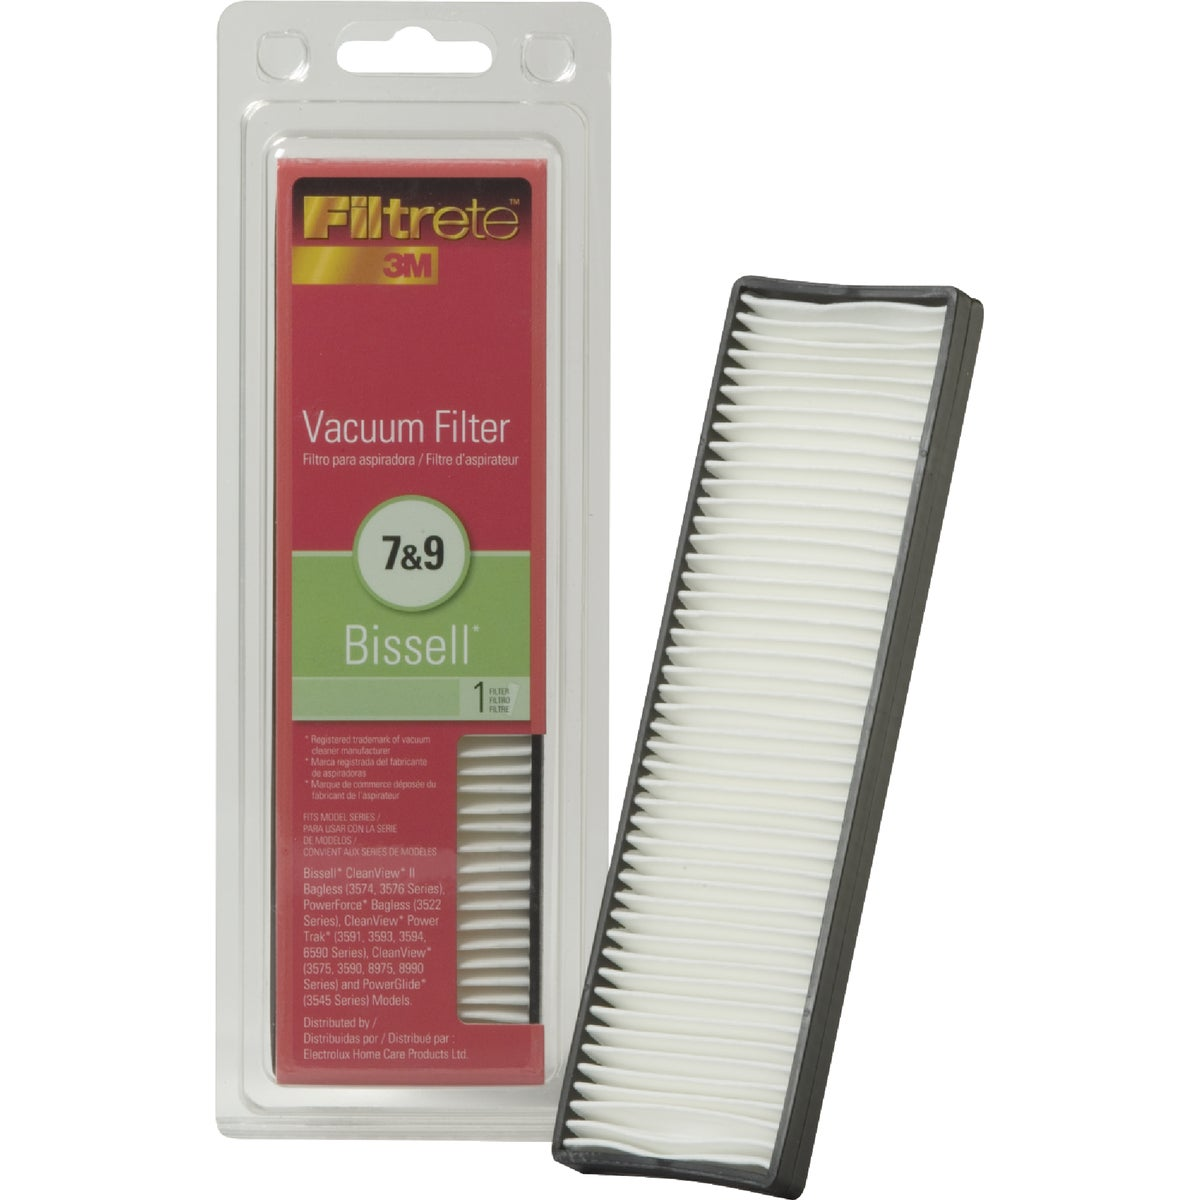 BISSELL VAC FILTER - 66807A-4 by Electrolux Home Care